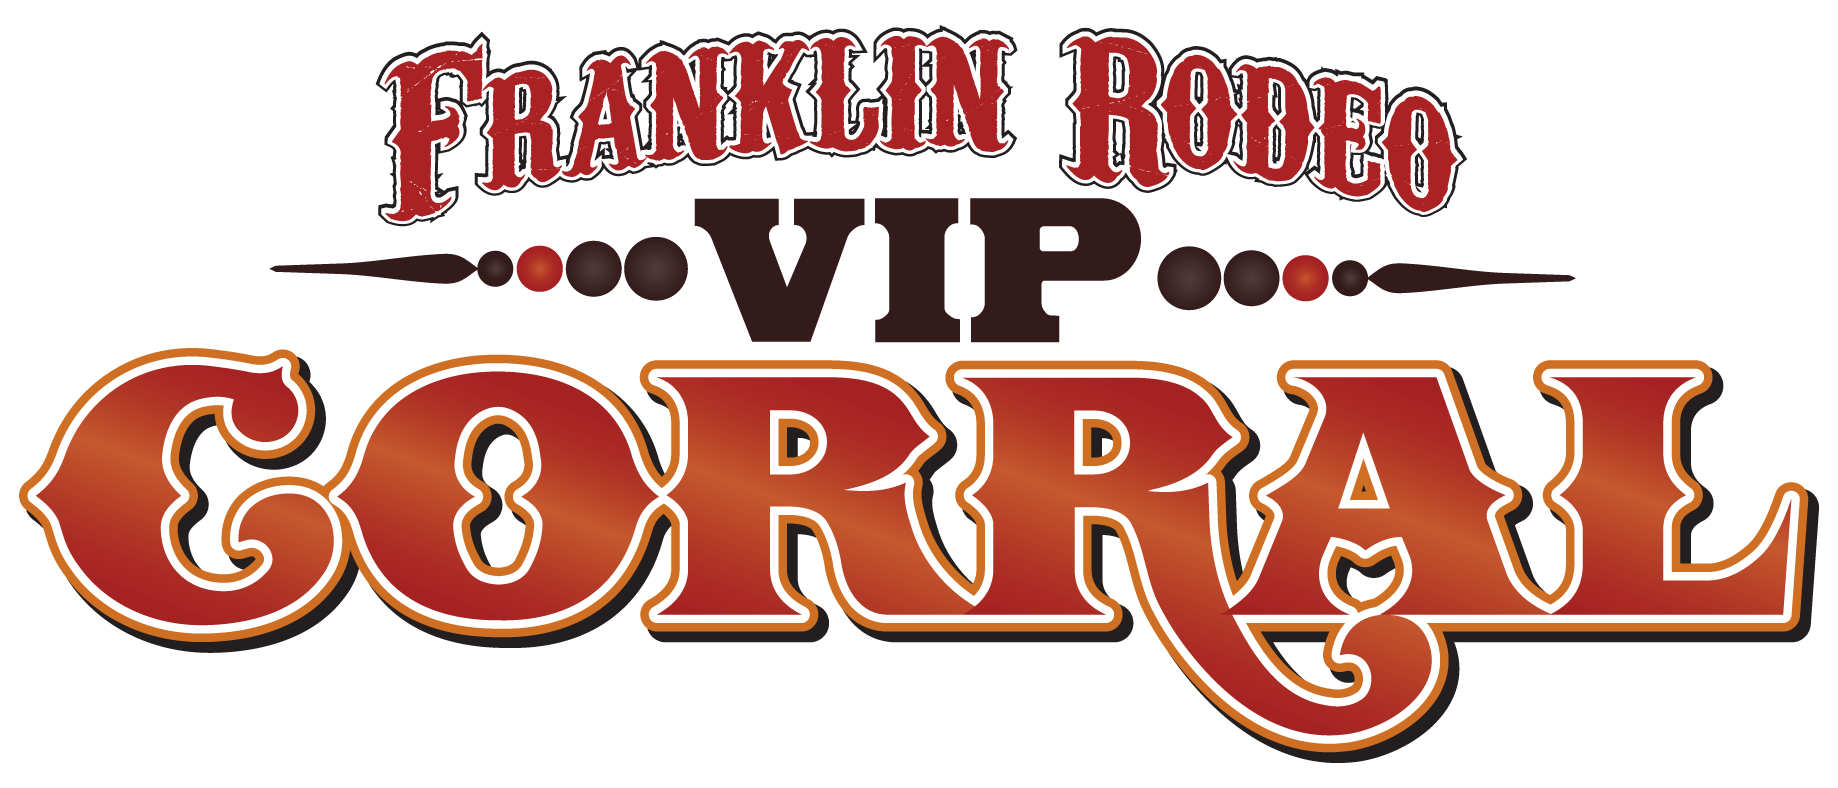 For franklin rodeo corral. Tickets clipart vip ticket